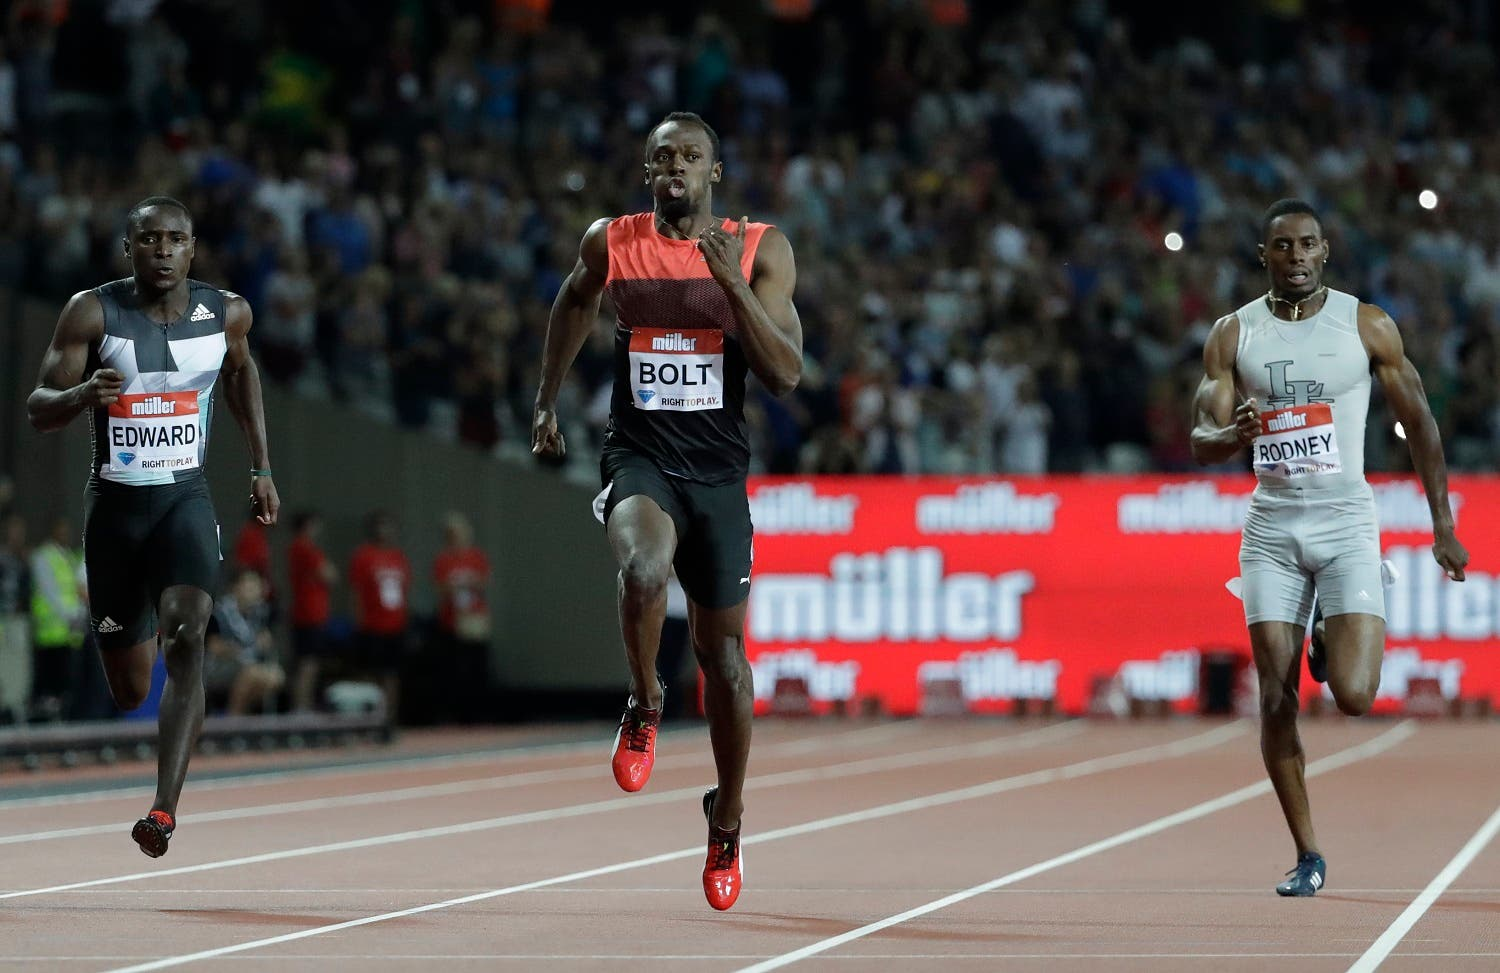 Usain Bolt of Jamaica, centre,runs onto win the men's 200 meter race during the Diamond League anniversary games at The Stadium, in the Queen Elizabeth Olympic Park in London, Friday, July 22, 2016. (AP)